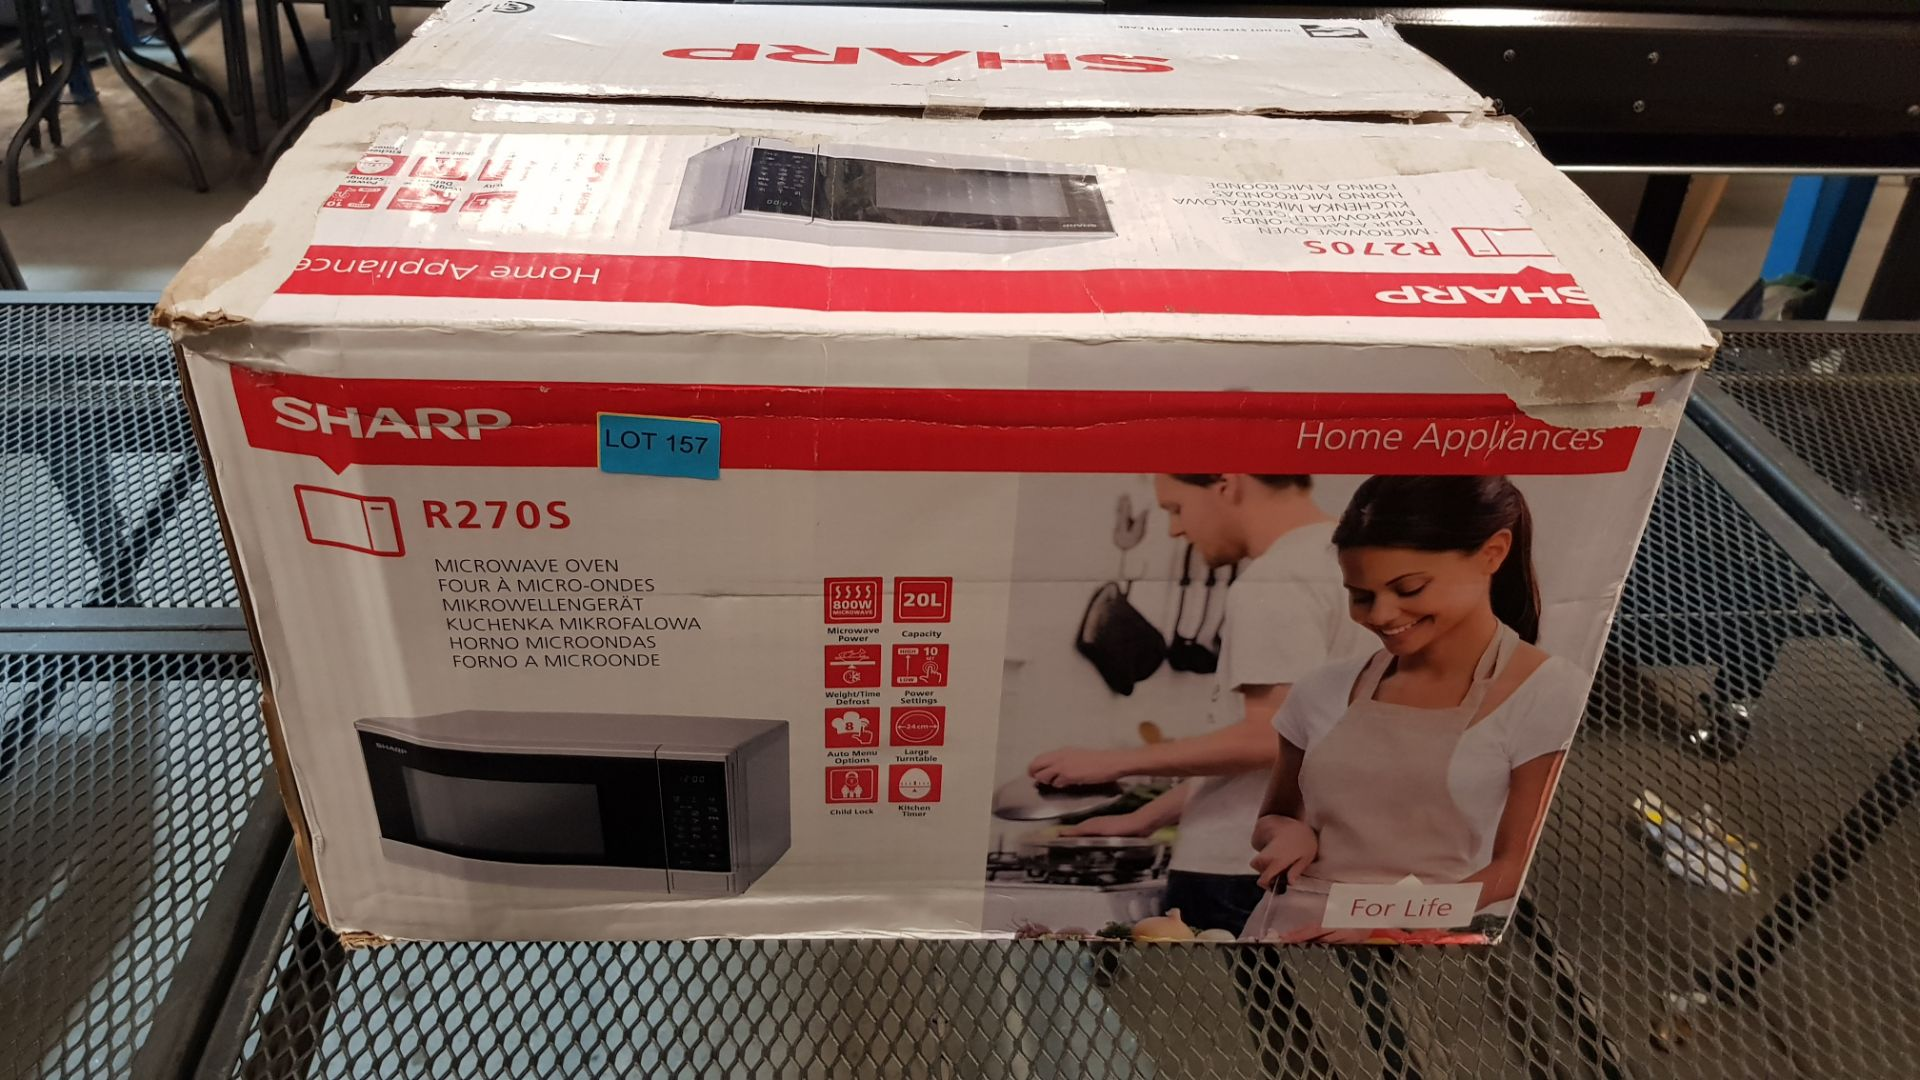 (15) 1x Sharp Microwave Oven Silver RRP £80. 800W, 20L, Weight / Time Defrost, Child Lock & Kitchen - Image 3 of 10